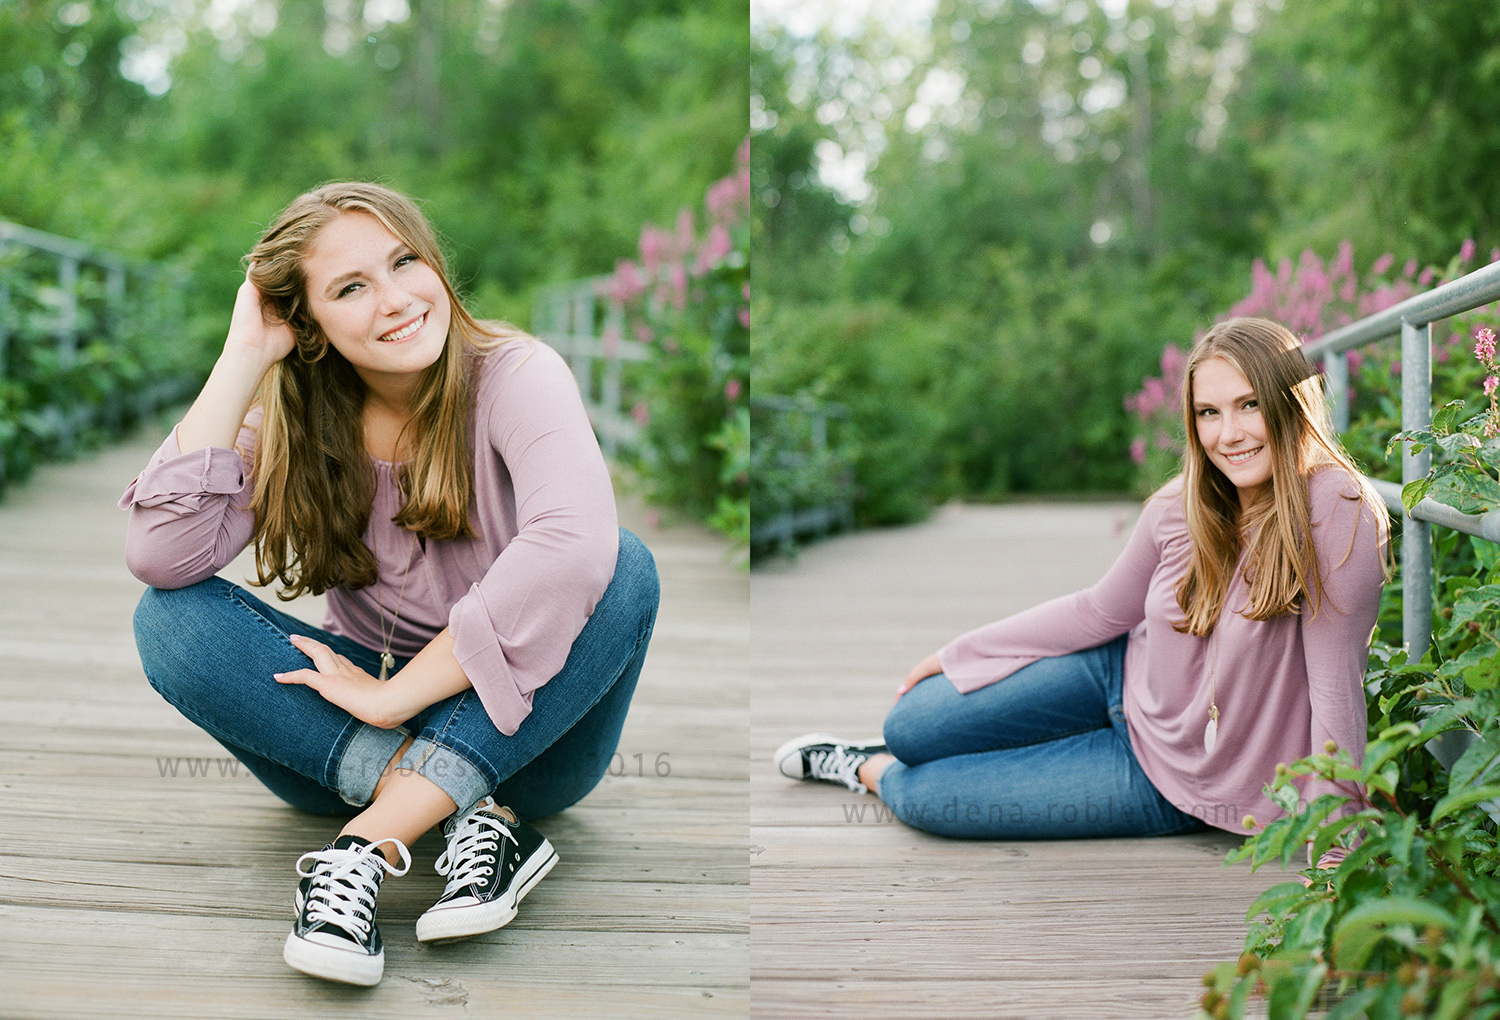 East Grand Rapids High School Senior photos